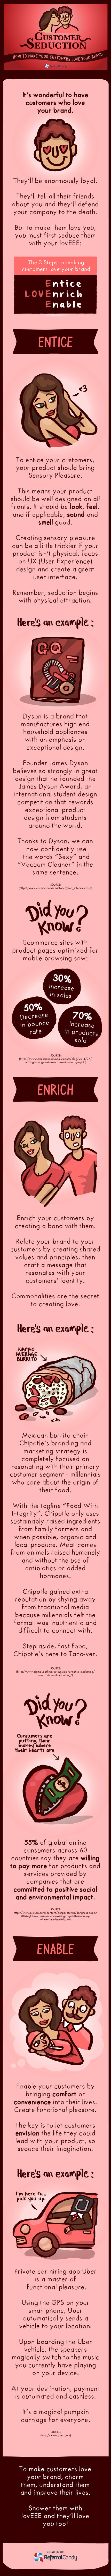 Build-Customer-Loyalty